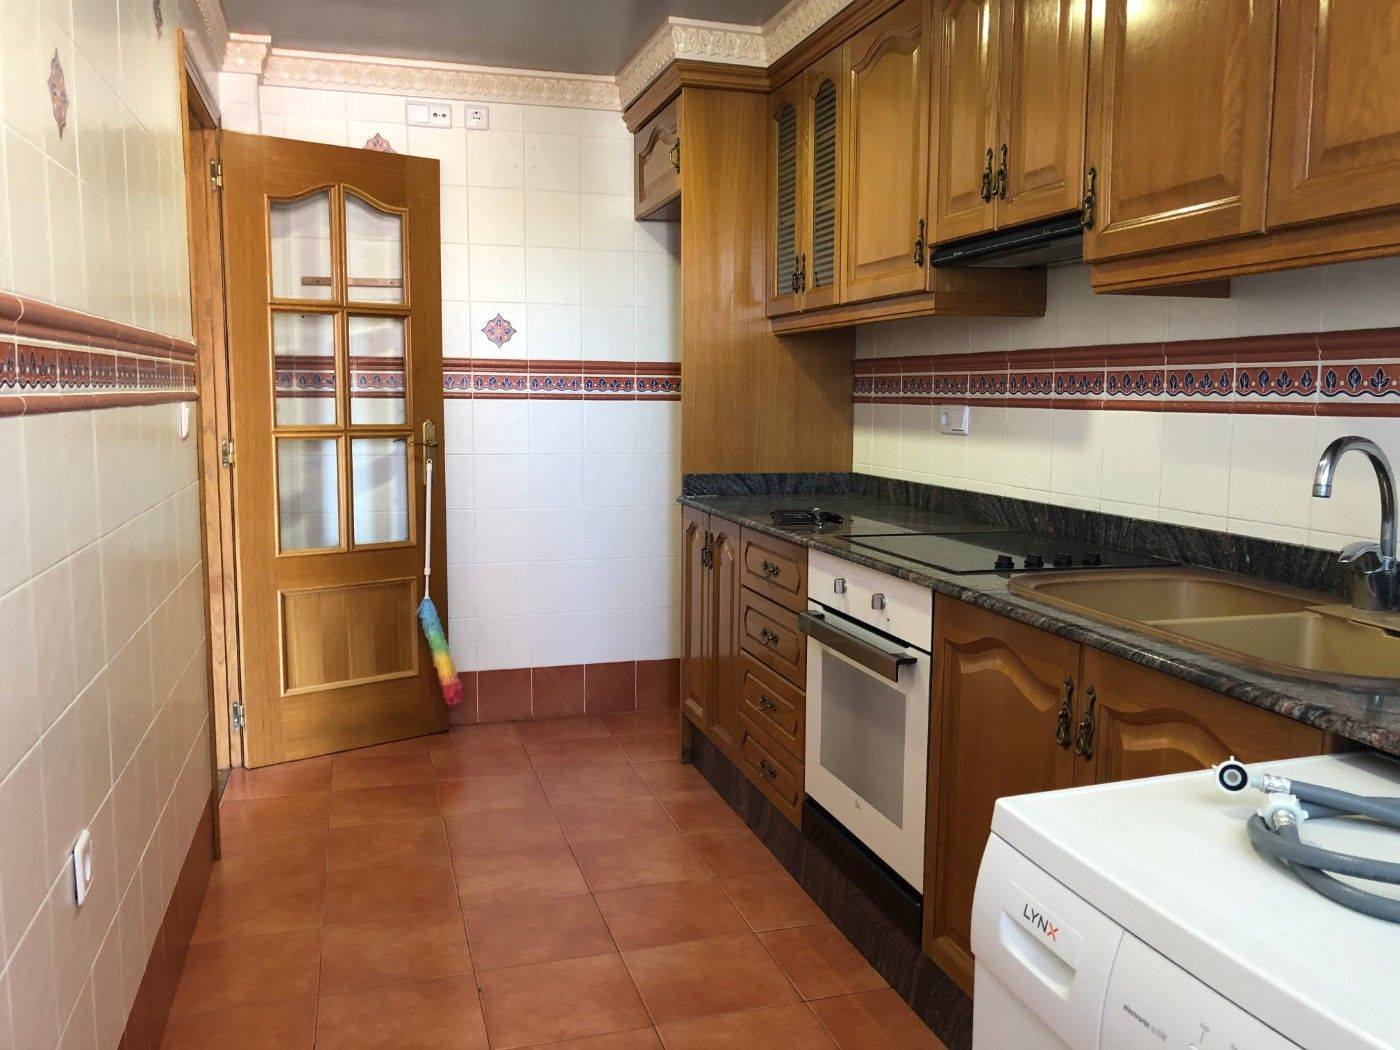 Location Appartement  Plaza españa. Piso sin amueblar, cheste